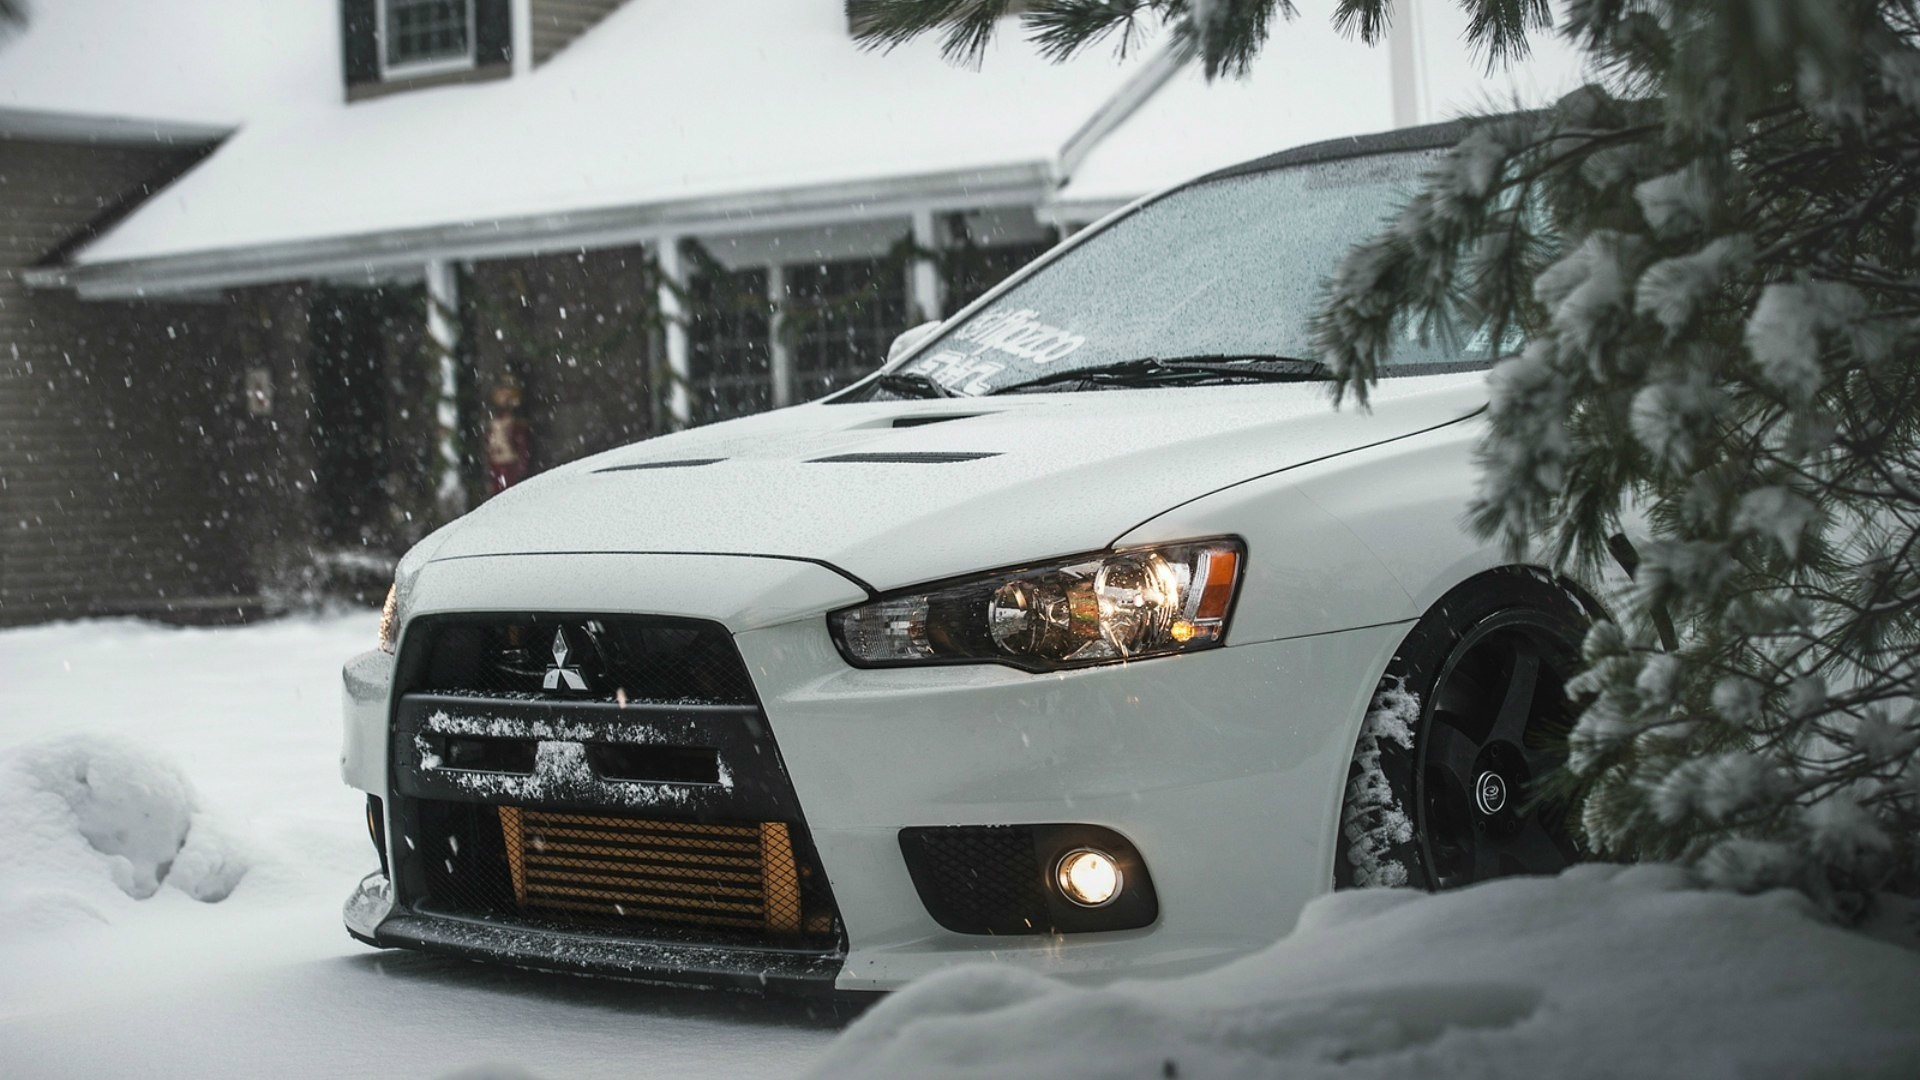 1920x1080 mitsubishi lancer evolution x winter show house